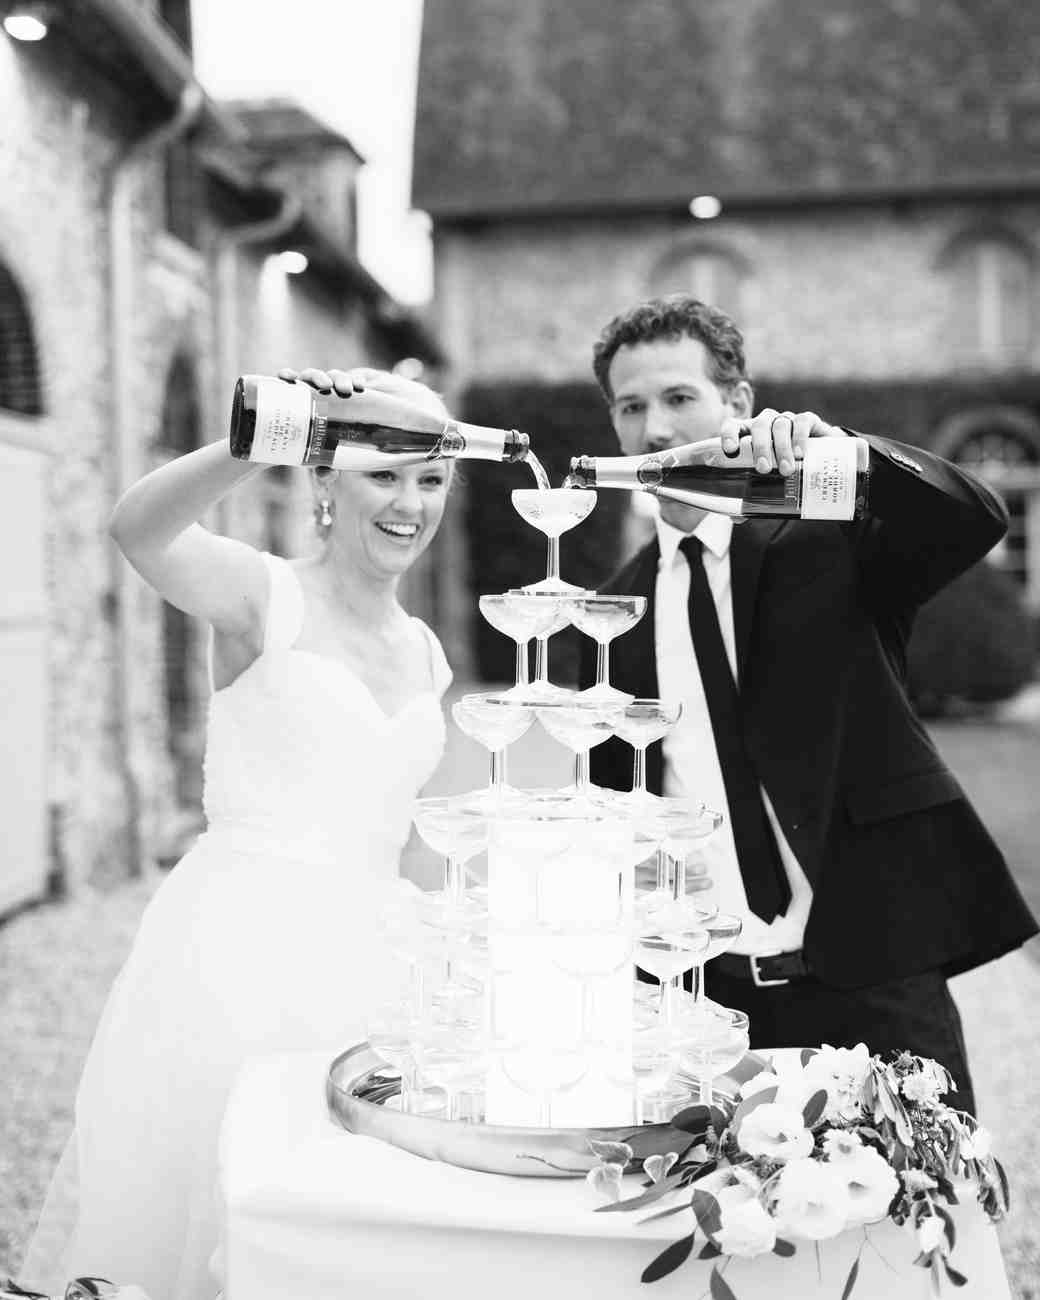 anneclaire-chris-wedding-france-champagne-tower-064-s113034-00716.jpg